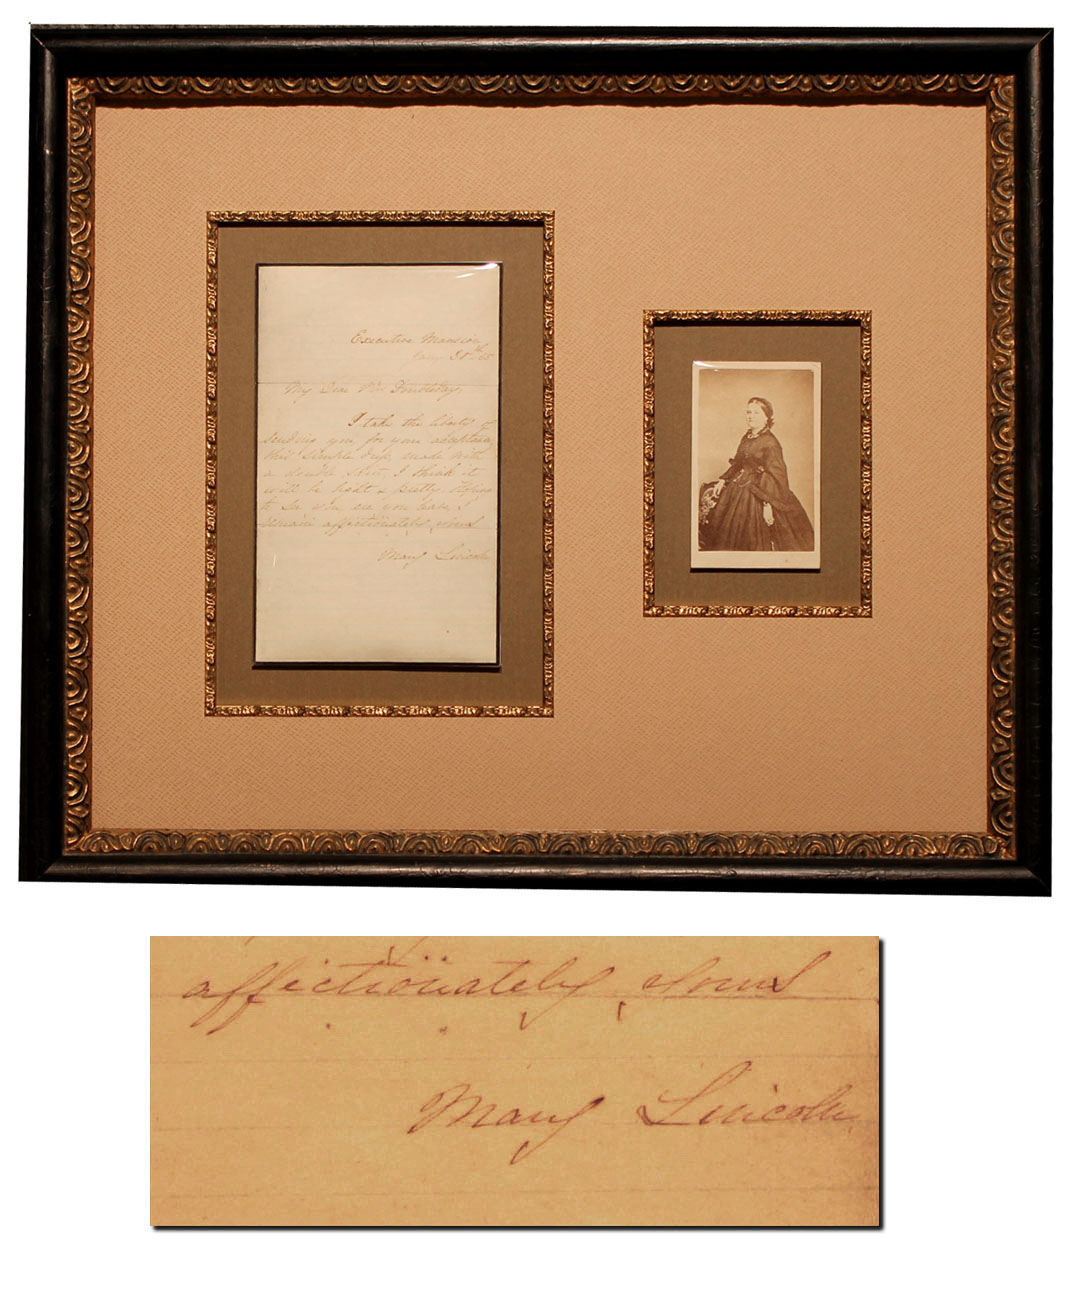 "Mary Lincoln Autograph Letter Signed as First Lady -- Mrs. Lincoln Gives a Going Away Present (Something ""light and pretty"") to Her Friend Mrs. Abner Doubleday"